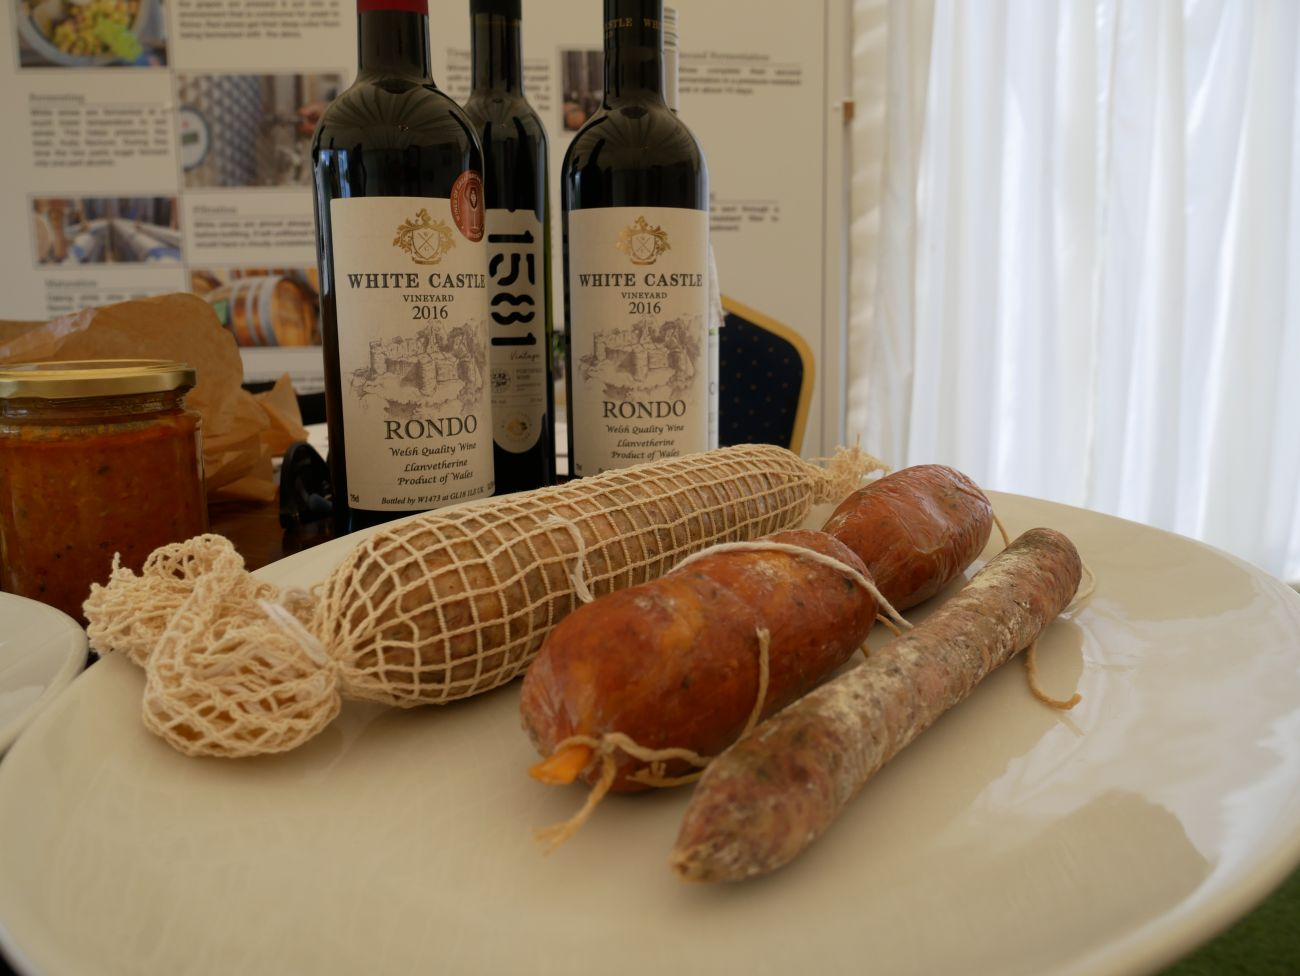 Wine and charcuterie